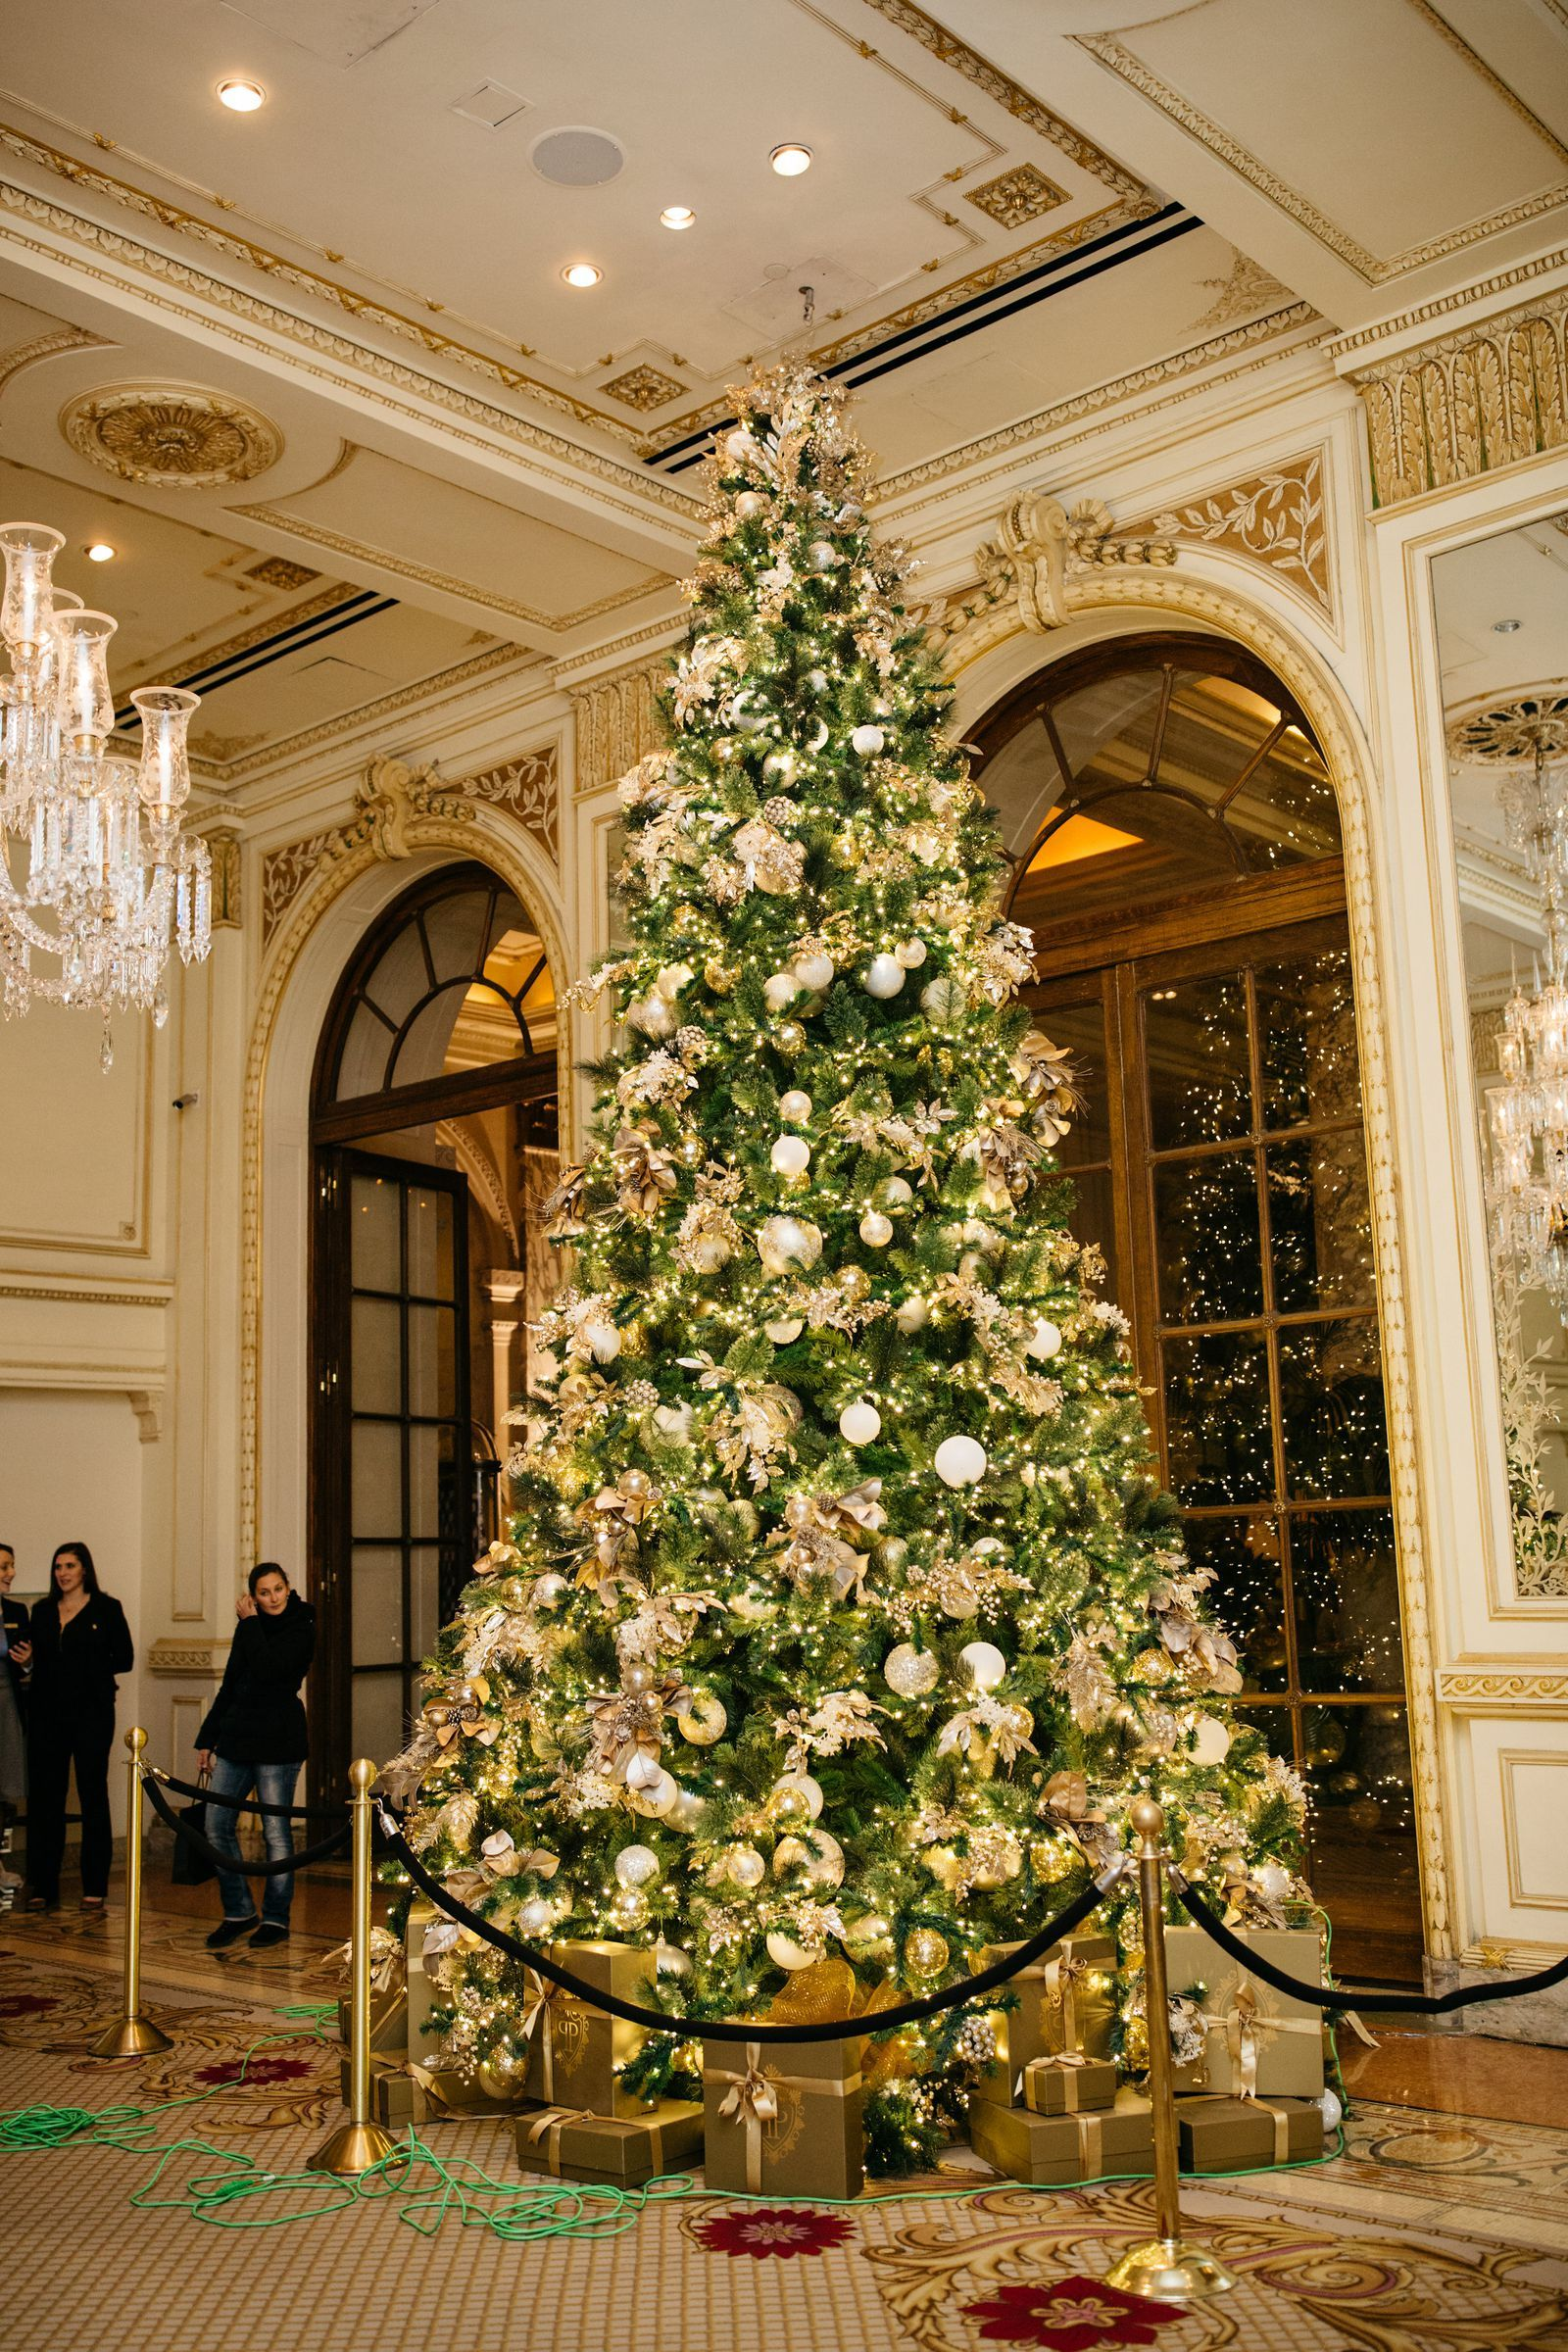 12 Of The Best Hotel Christmas Trees From Around The World In 2020 White House Christmas Decorations Hotel Decor White House Christmas